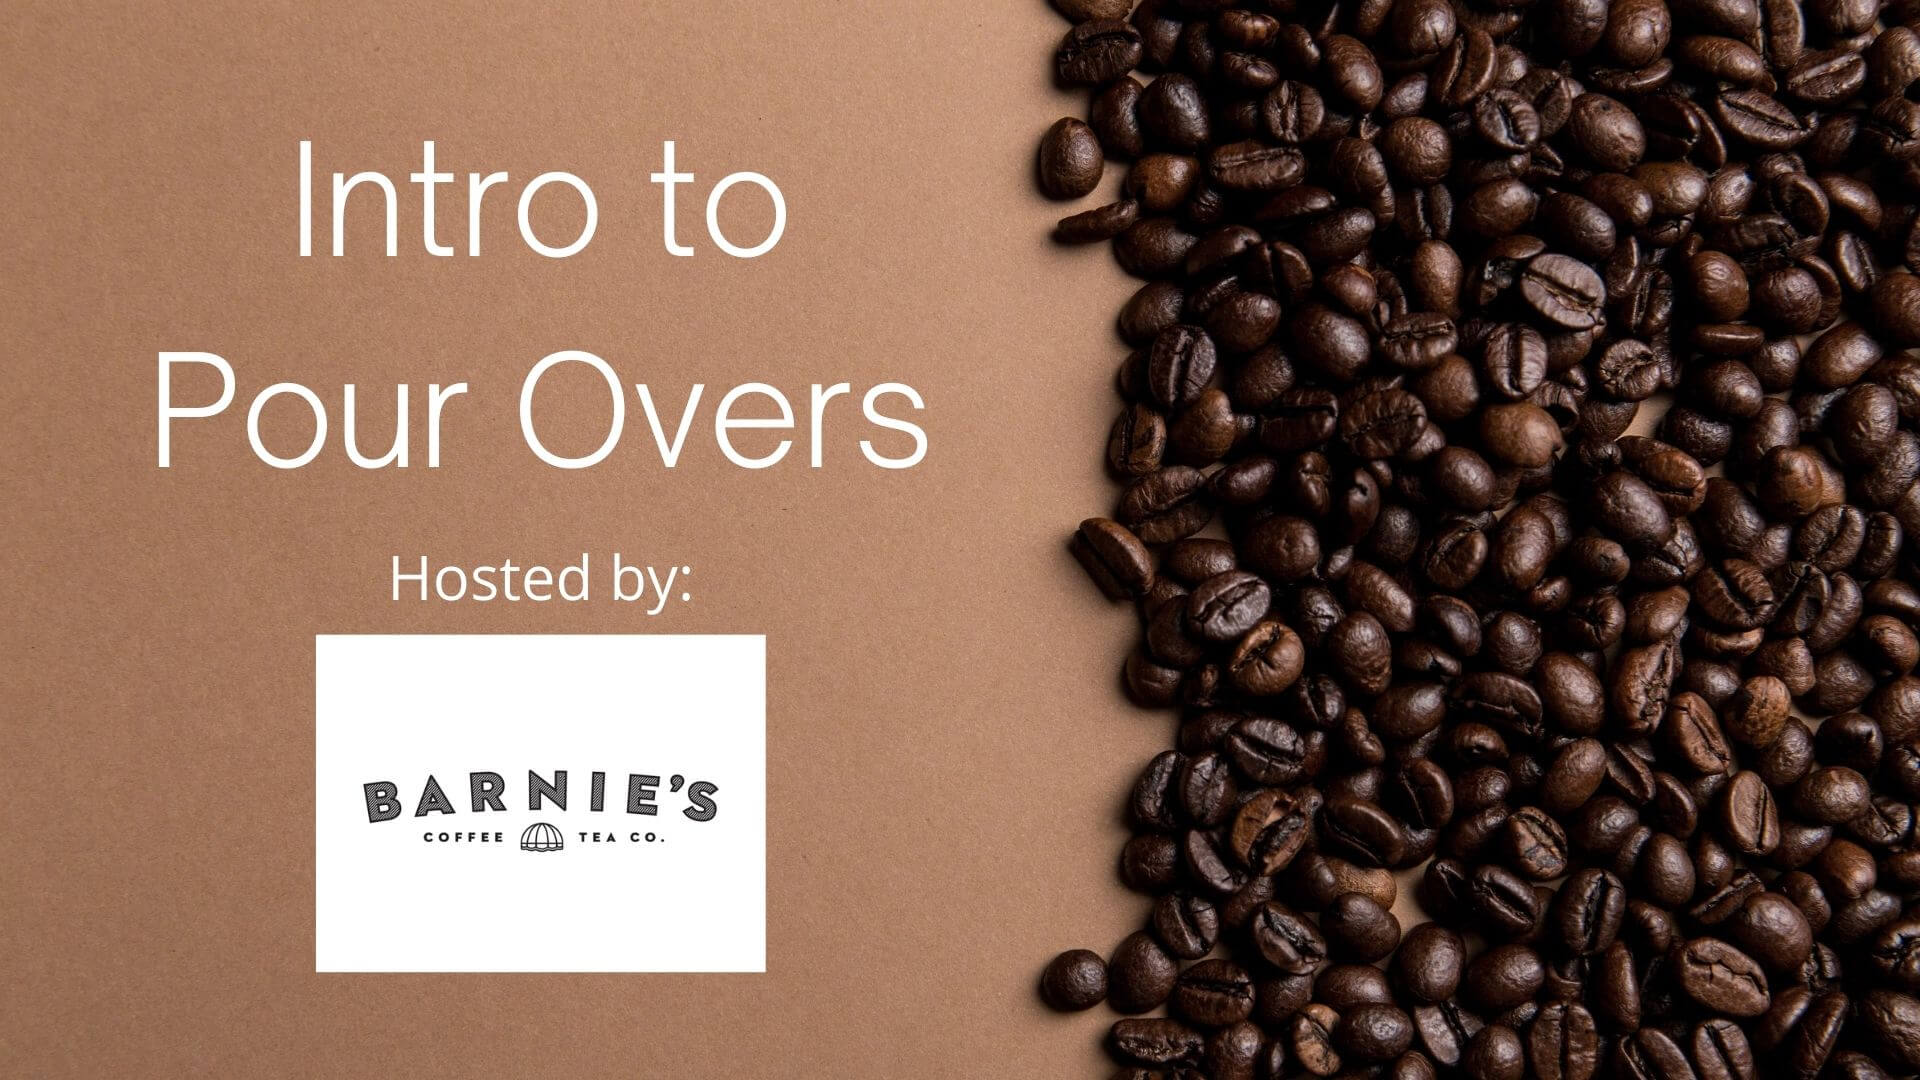 Intro to Pour Overs Hosted by Barnie's Coffee